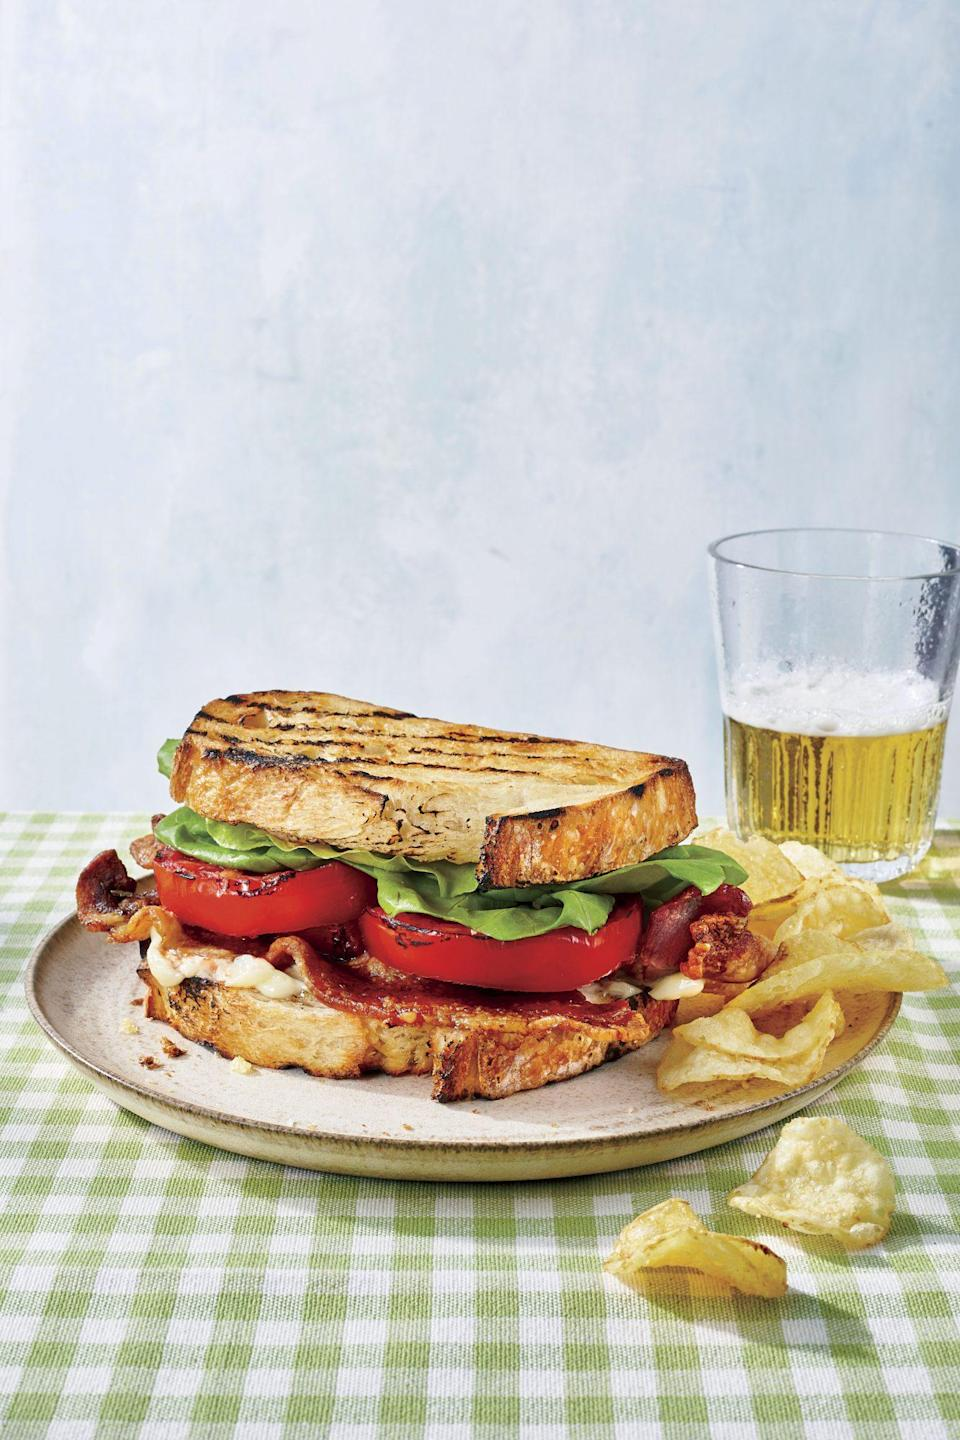 """<p><strong>Recipe: </strong><a href=""""https://www.southernliving.com/recipes/smoky-grilled-blt"""" rel=""""nofollow noopener"""" target=""""_blank"""" data-ylk=""""slk:Smoky Grilled BLT"""" class=""""link rapid-noclick-resp""""><strong>Smoky Grilled BLT</strong></a></p> <p>""""Occam's razor says that 'the simplest explanation is usually the best one.' Of all the beautiful dishes you can make with juicy summer tomatoes, the most uncomplicated (and in my opinion, the best) thing you can do with them is put them on a sandwich. I prefer a BLT over the purist's tomato sandwich, and I'm not afraid to jazz it up with a little avocado or fancy bread. Regardless, the star of the show, that thick, ripe slice of tomato, can't help but remain in the spotlight."""" Mary Shannon Hodes, Assistant Editor</p>"""